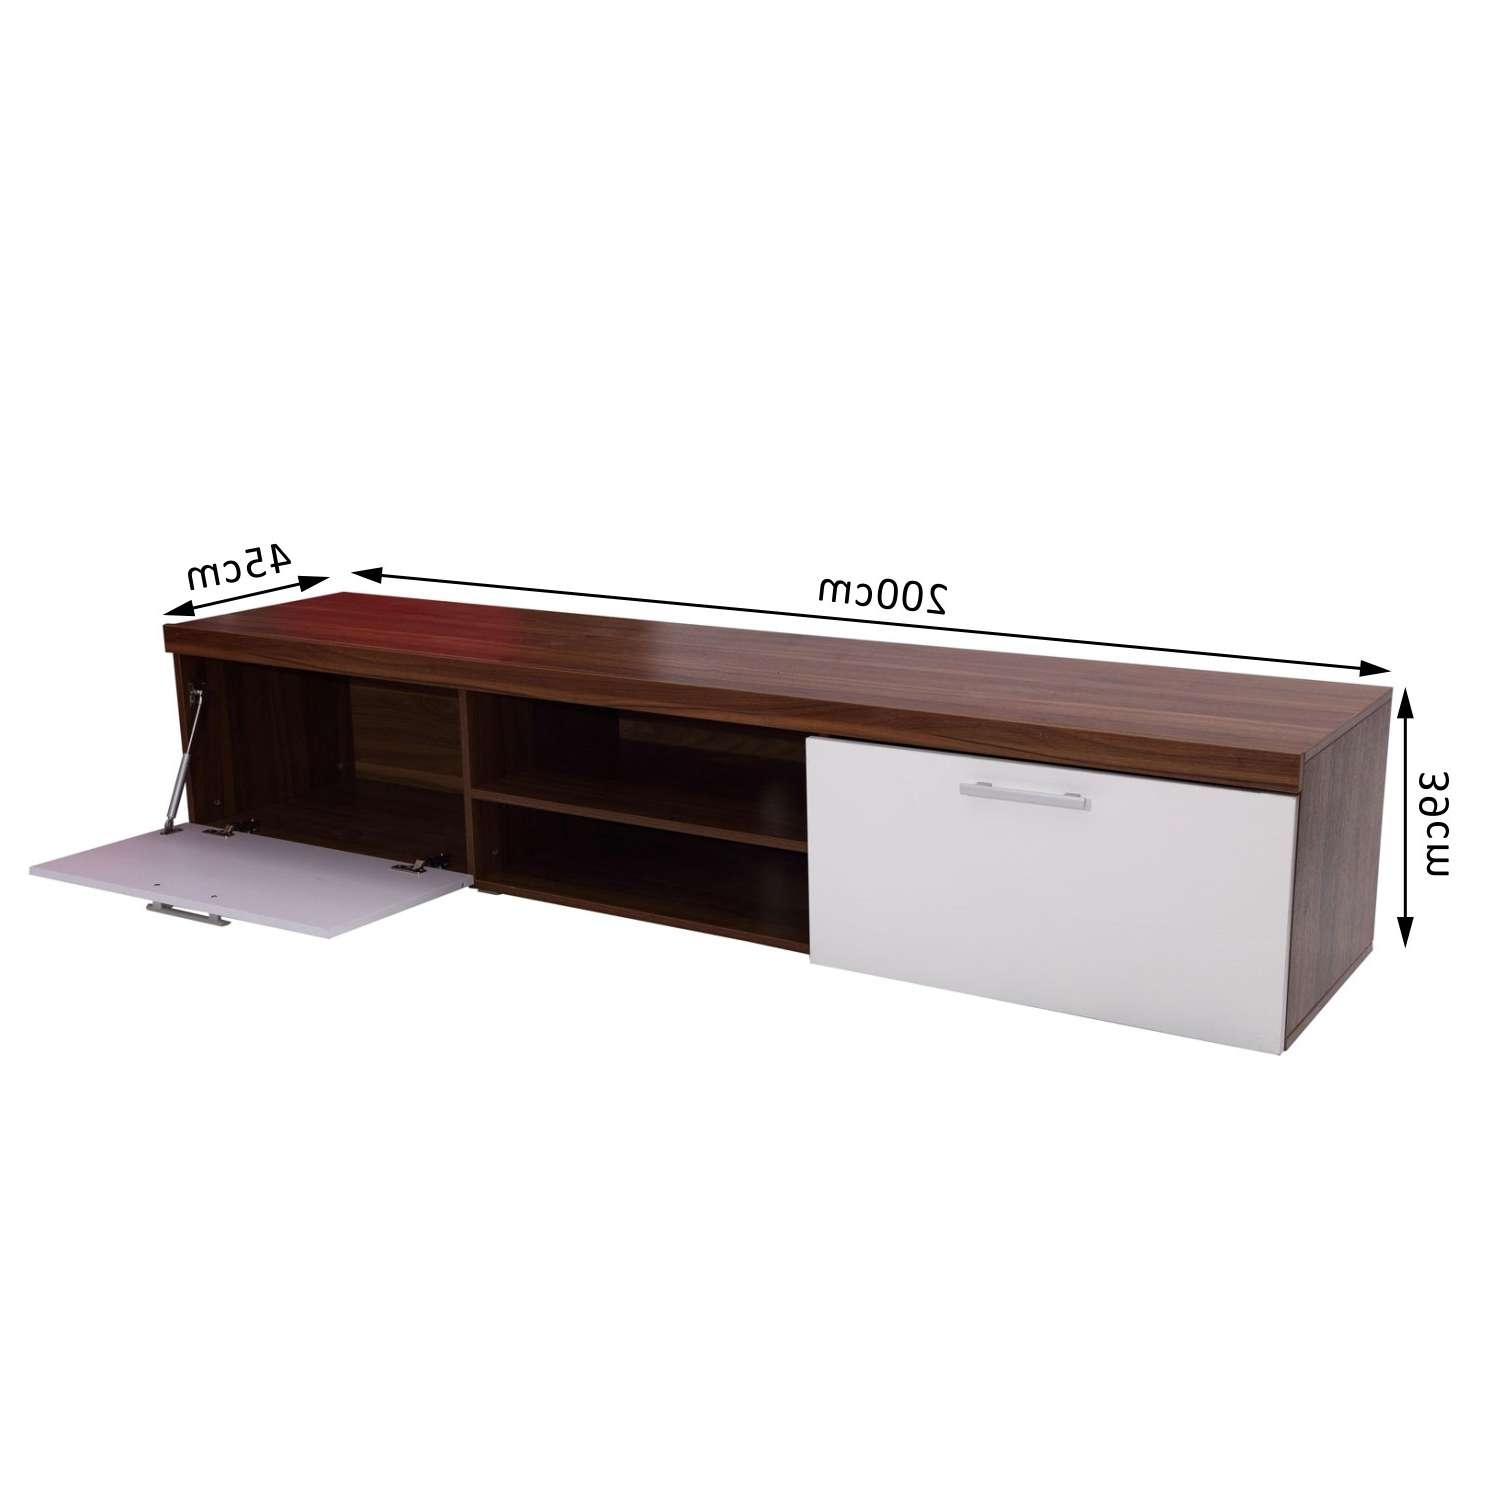 Homcom Tv Cabinet Unit, 2 High Gloss Doors White/walnut Regarding Walnut Tv Cabinets With Doors (View 8 of 20)